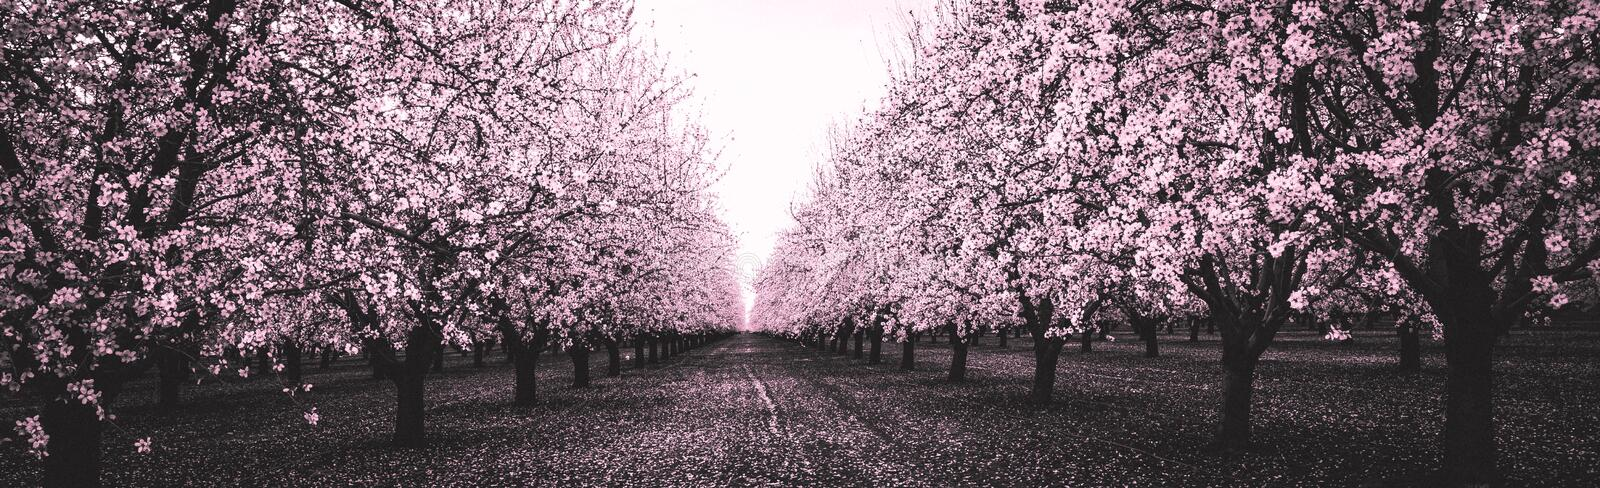 Pink Blossom Orchard in Black and White royalty free stock image